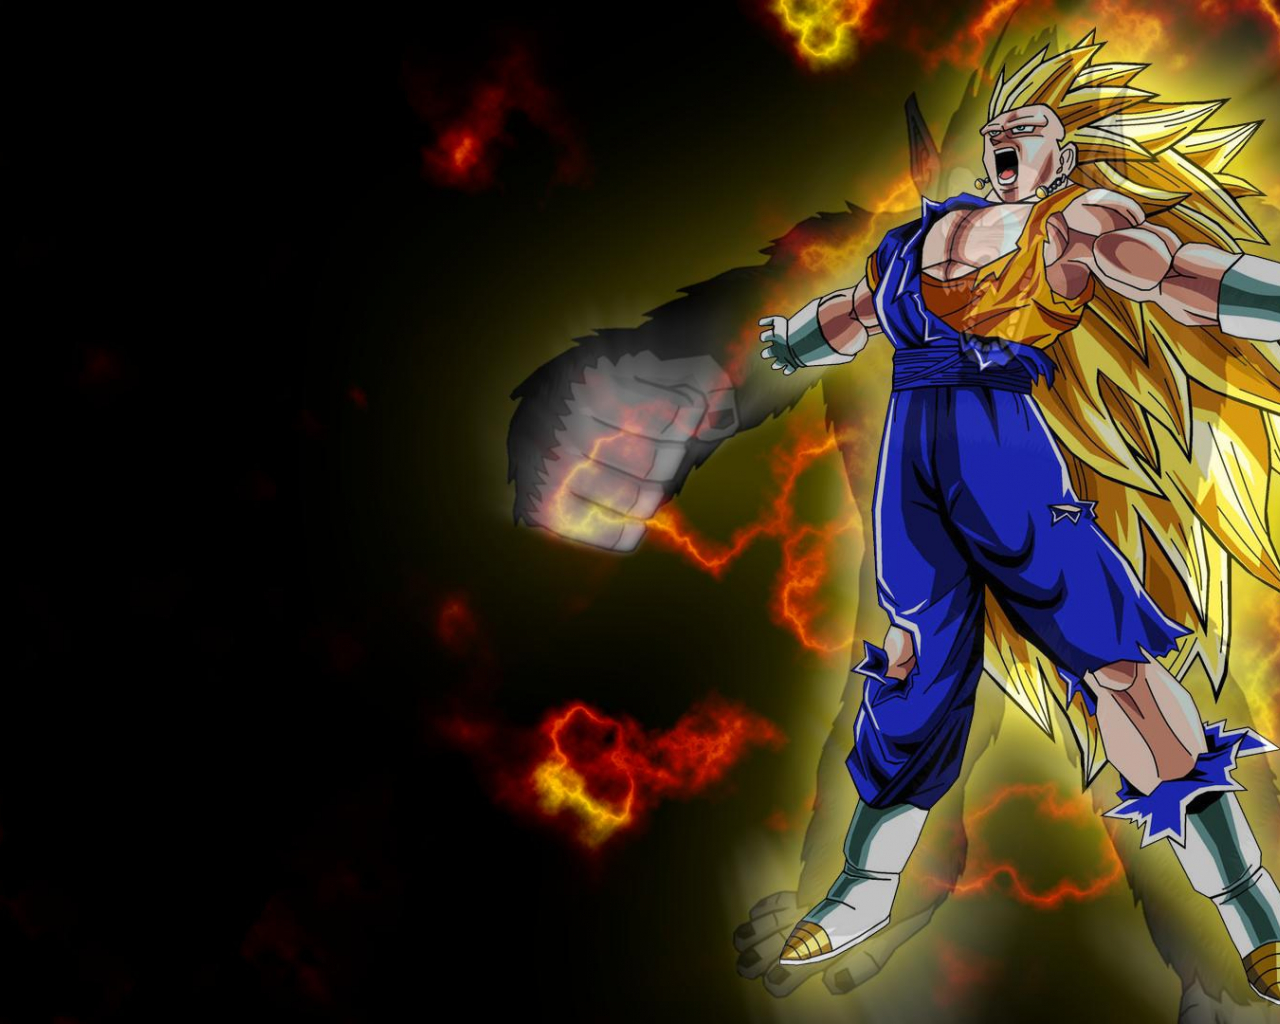 Free Download Vegito Wallpapers 1920x1080 For Your Desktop